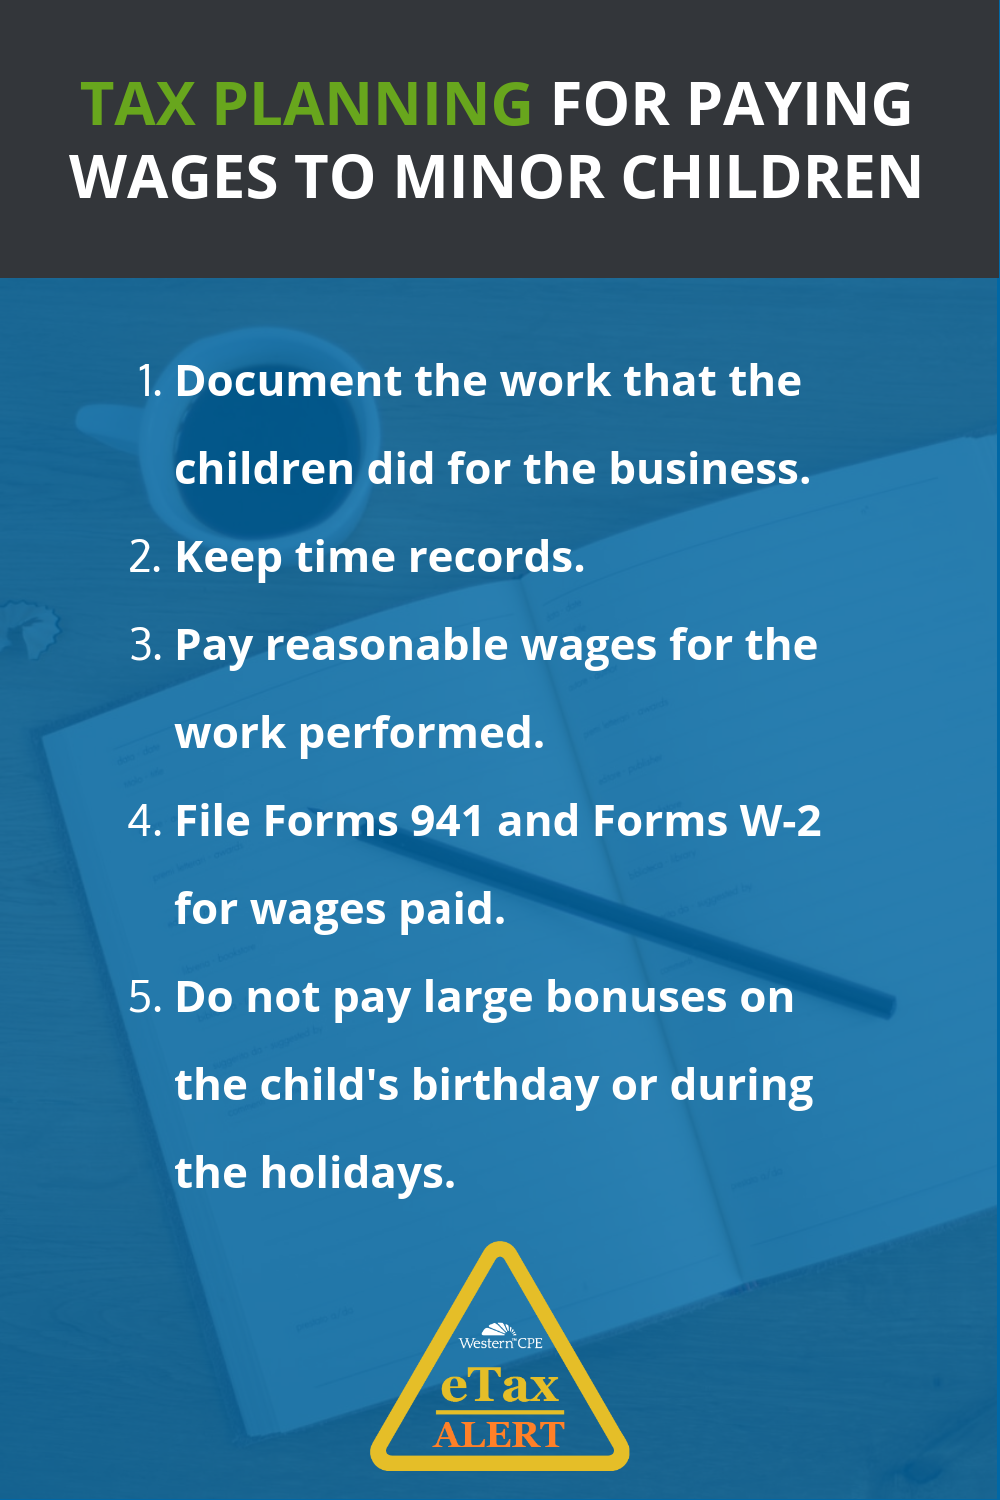 Tax Benefits - Tax Planning - for paying minor children wages